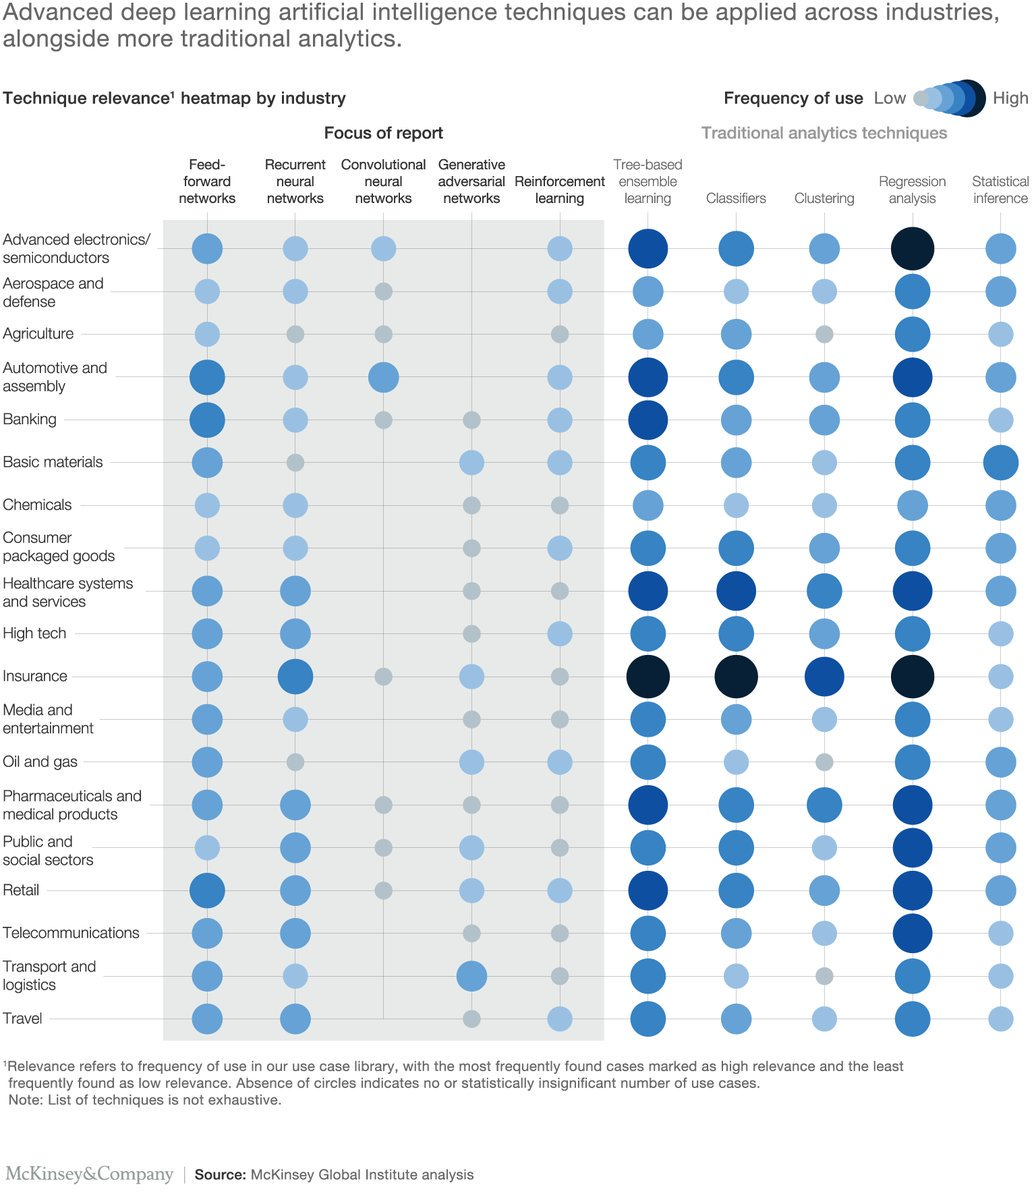 Excellent, McKinsey Notes From The #AI frontier - Insights From Hundreds Of Use Cases  McKinsey_MGI McKAnalytics   #MachineLearning #DeepLearning #BigData #Fintech #Insurtech #Datascience #ML #DL #Robotics #tech  https://www. mckinsey.com/~/media/mckins ey/global%20themes/artificial%20intelligence/notes%20from%20the%20ai%20frontier%20applications%20and%20value%20of%20deep%20learning/mgi_notes-from-ai-frontier_discussion-paper.ashx &nbsp; …  <br>http://pic.twitter.com/1wP1jKSbzg via DeepLearn007 …